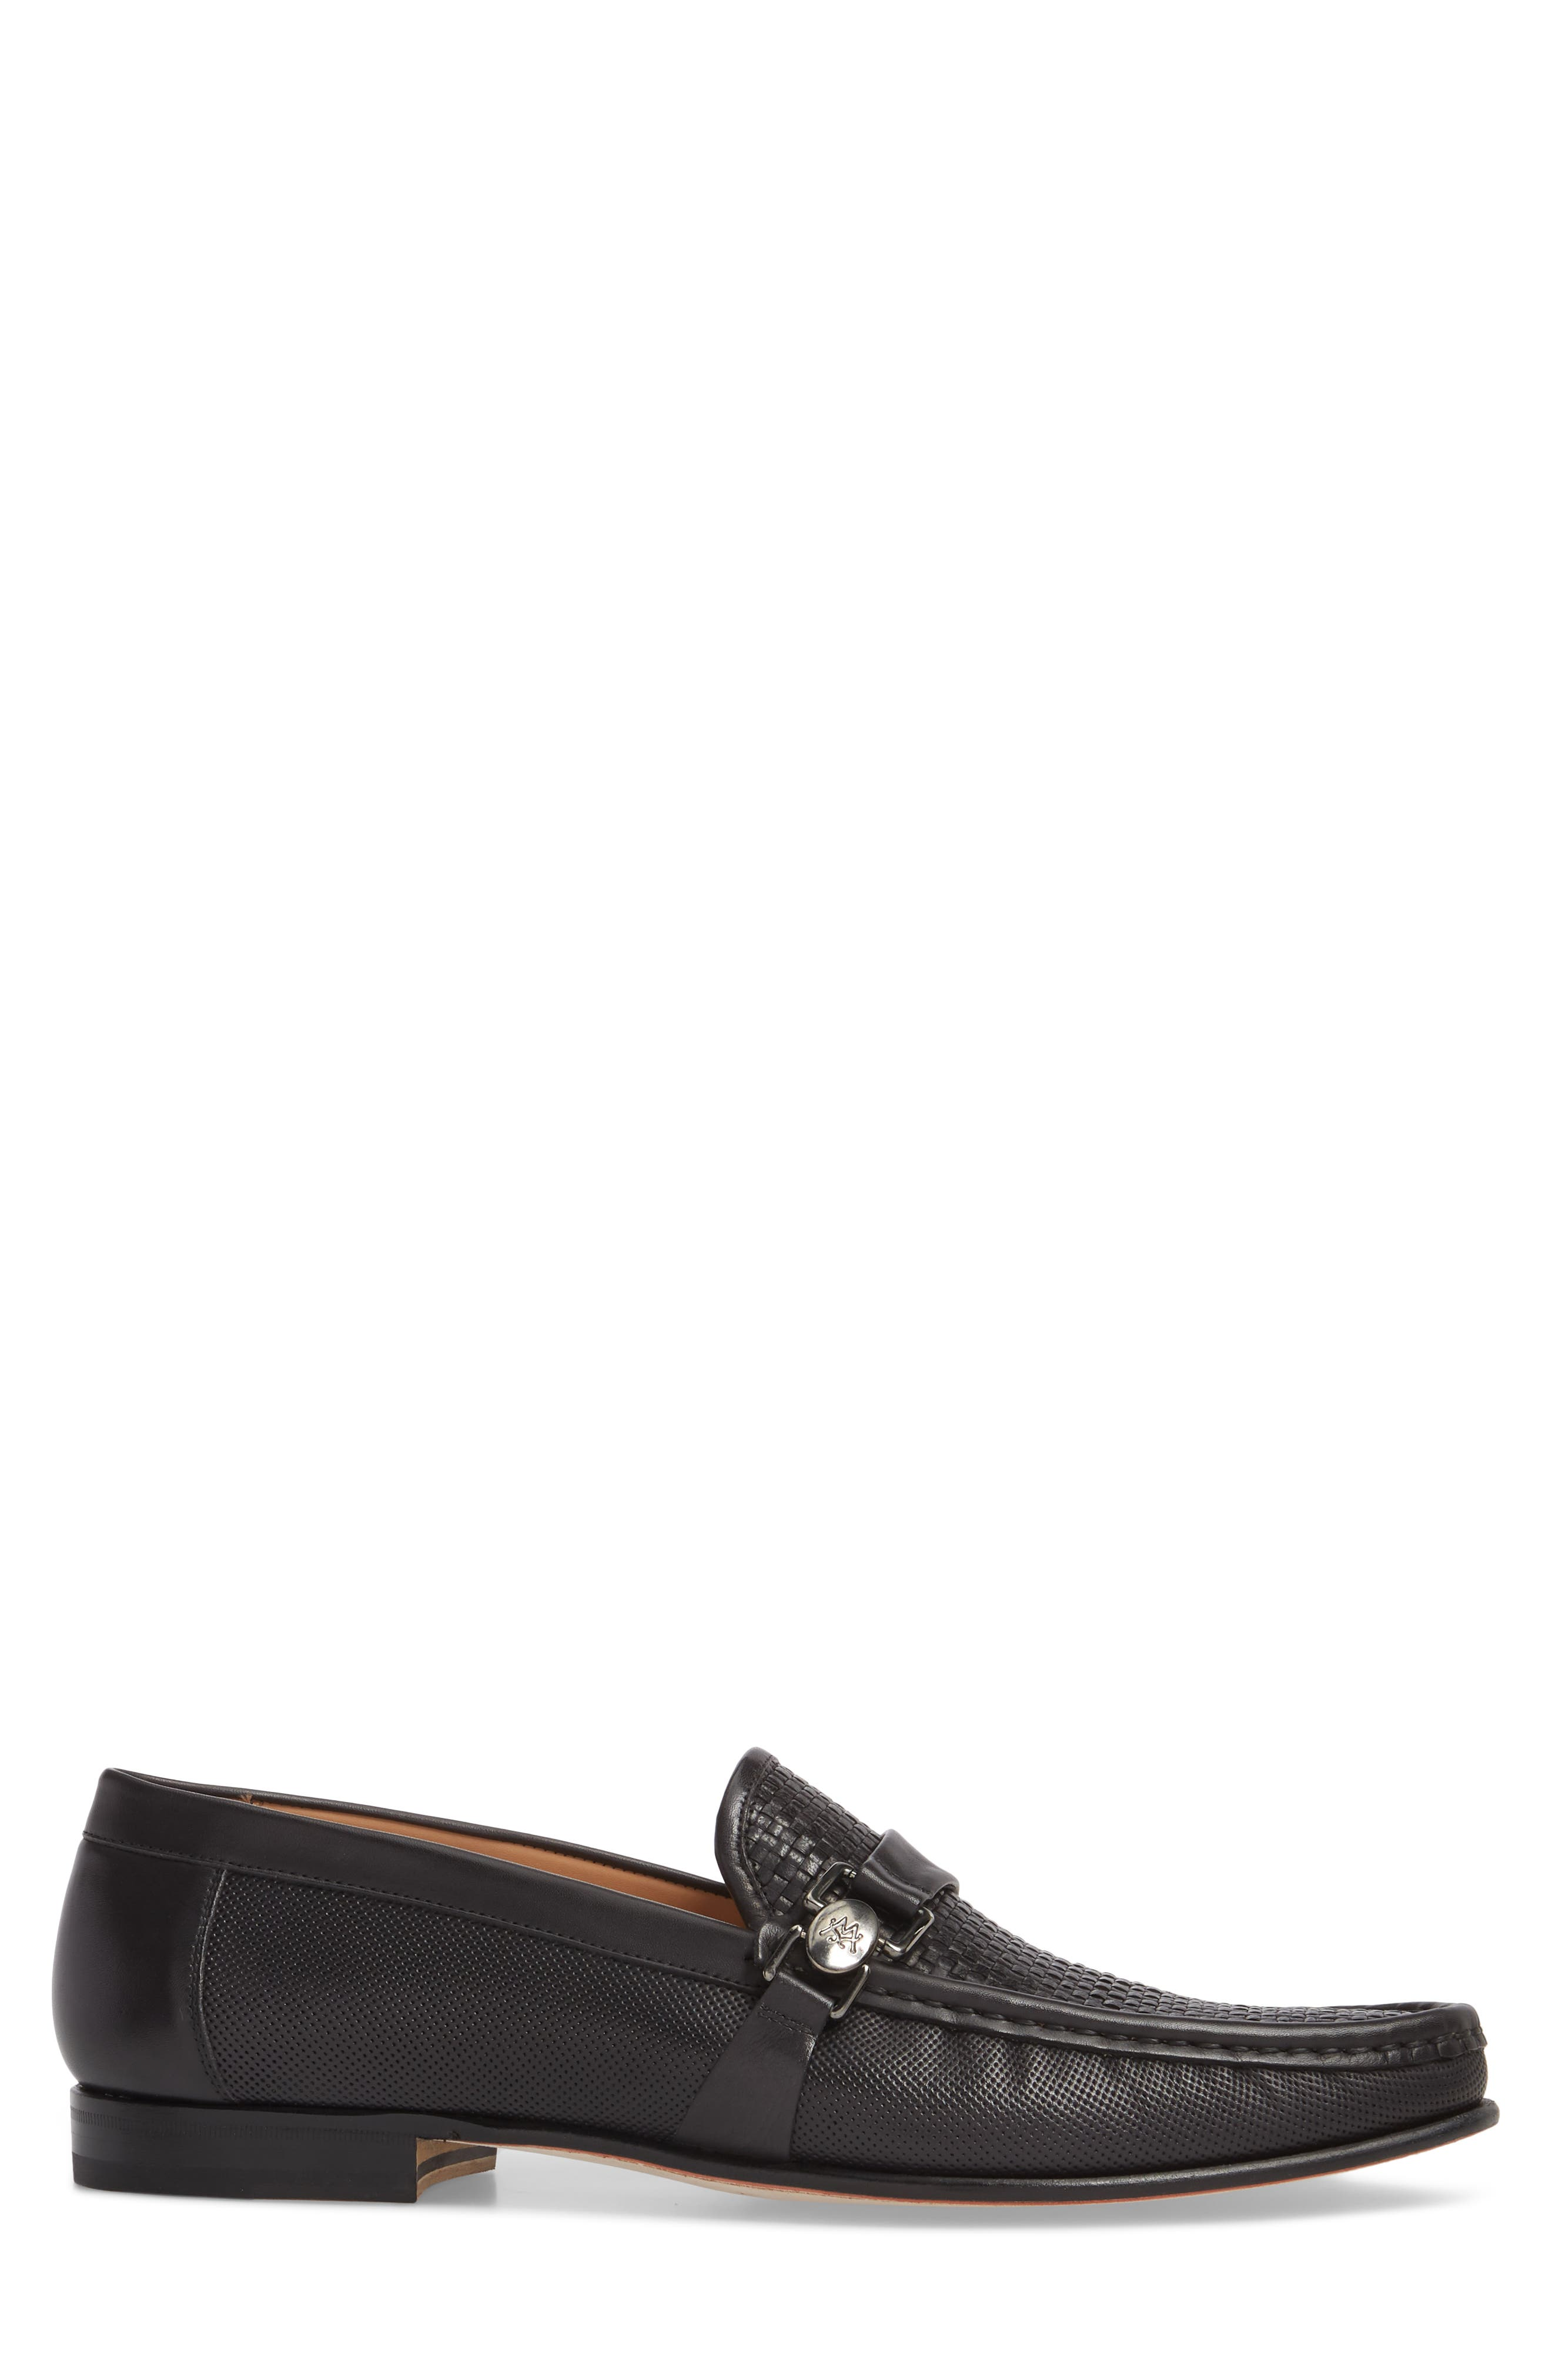 Horatio Woven Moc Toe Loafer,                             Alternate thumbnail 3, color,                             Black Leather